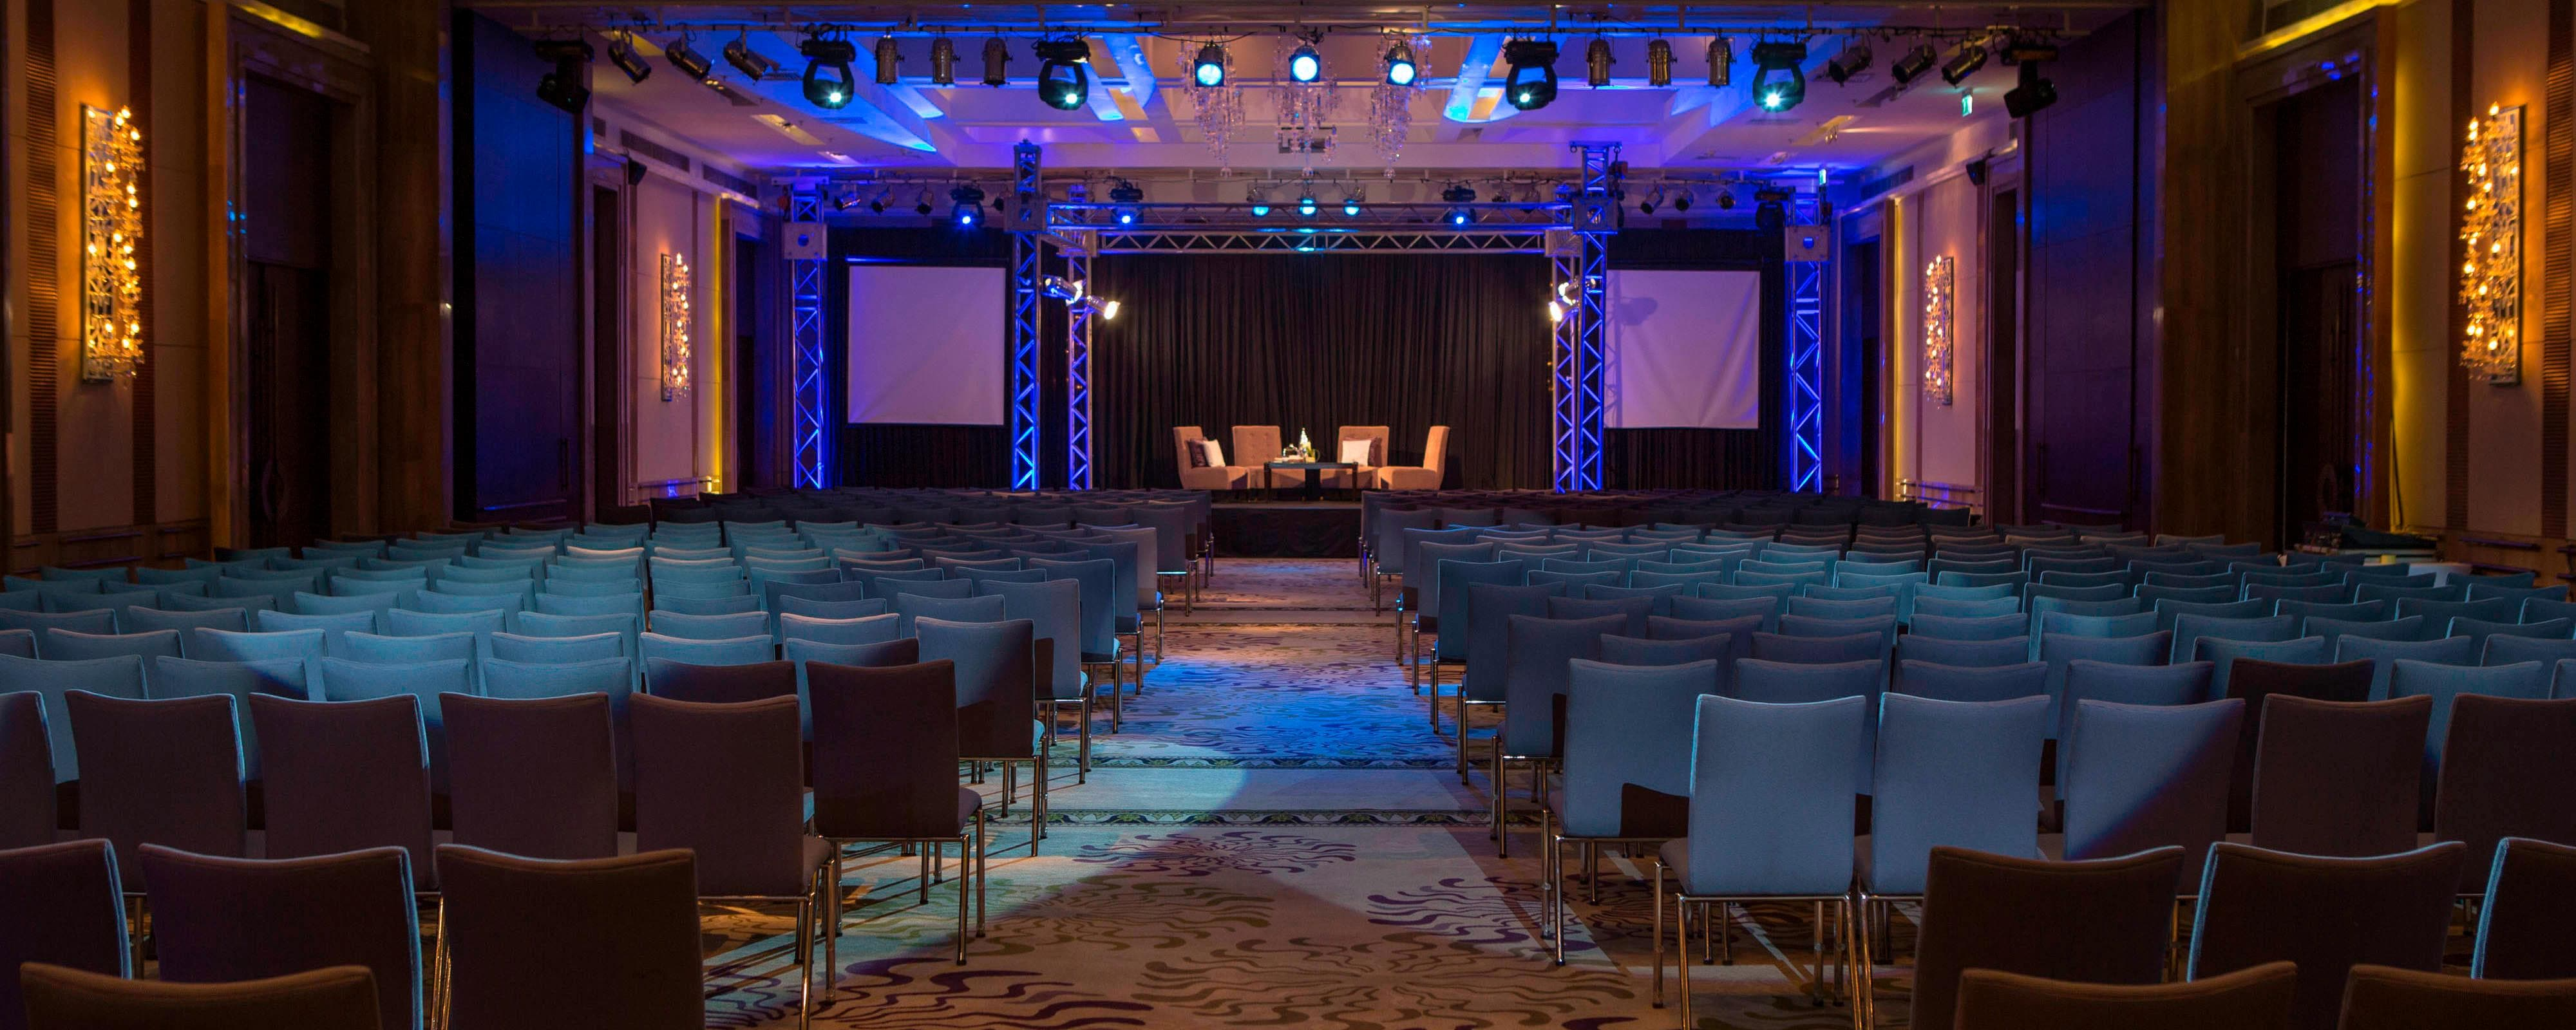 Event venue in Heliopolis Cairo